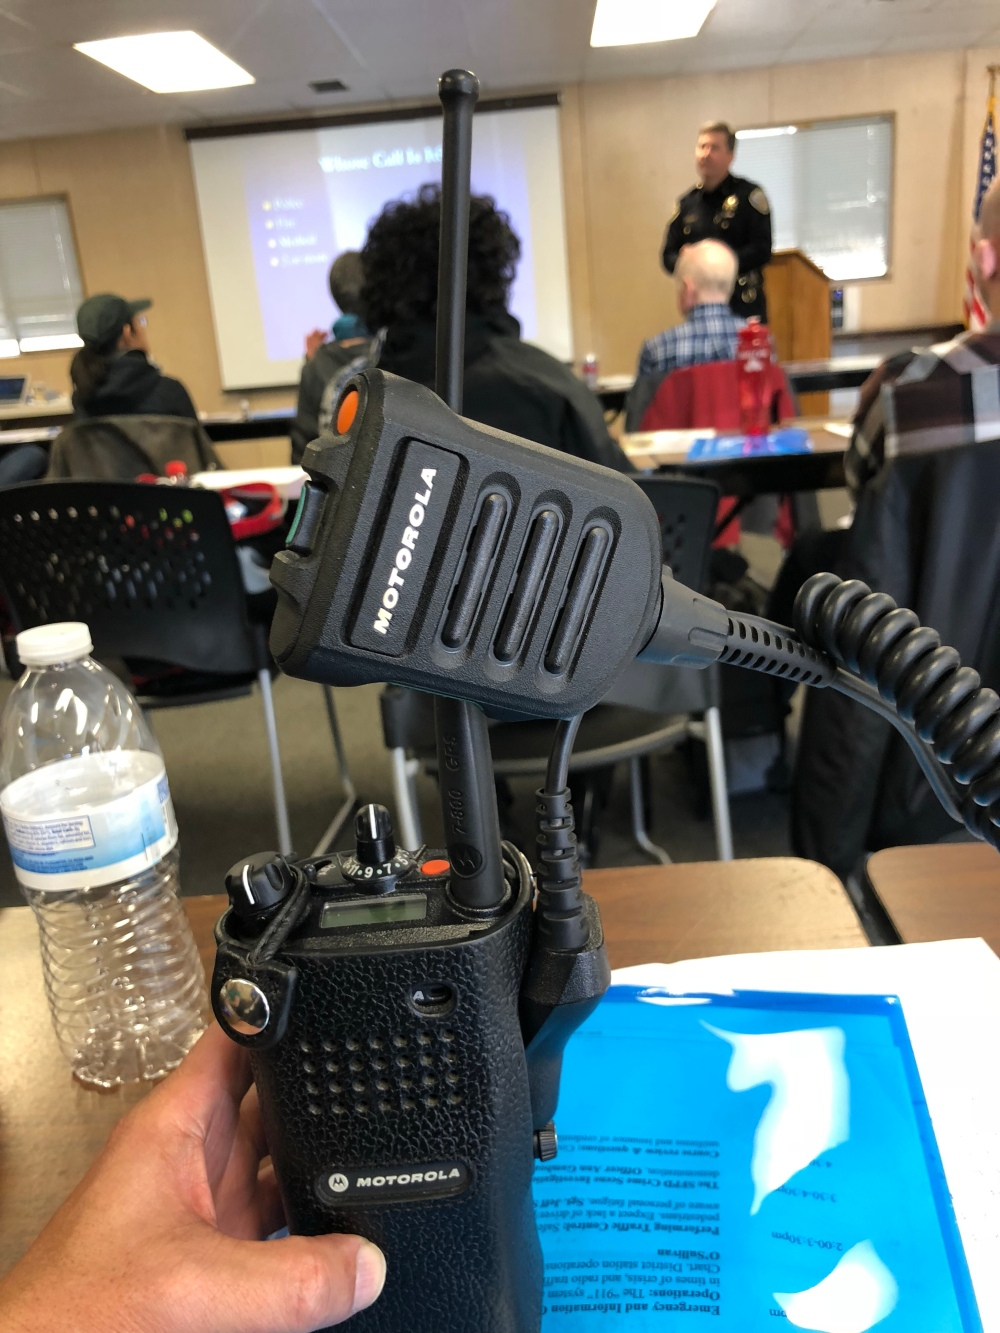 Alfonso Faustino: Ailunce HD1 is a a good transceiver for